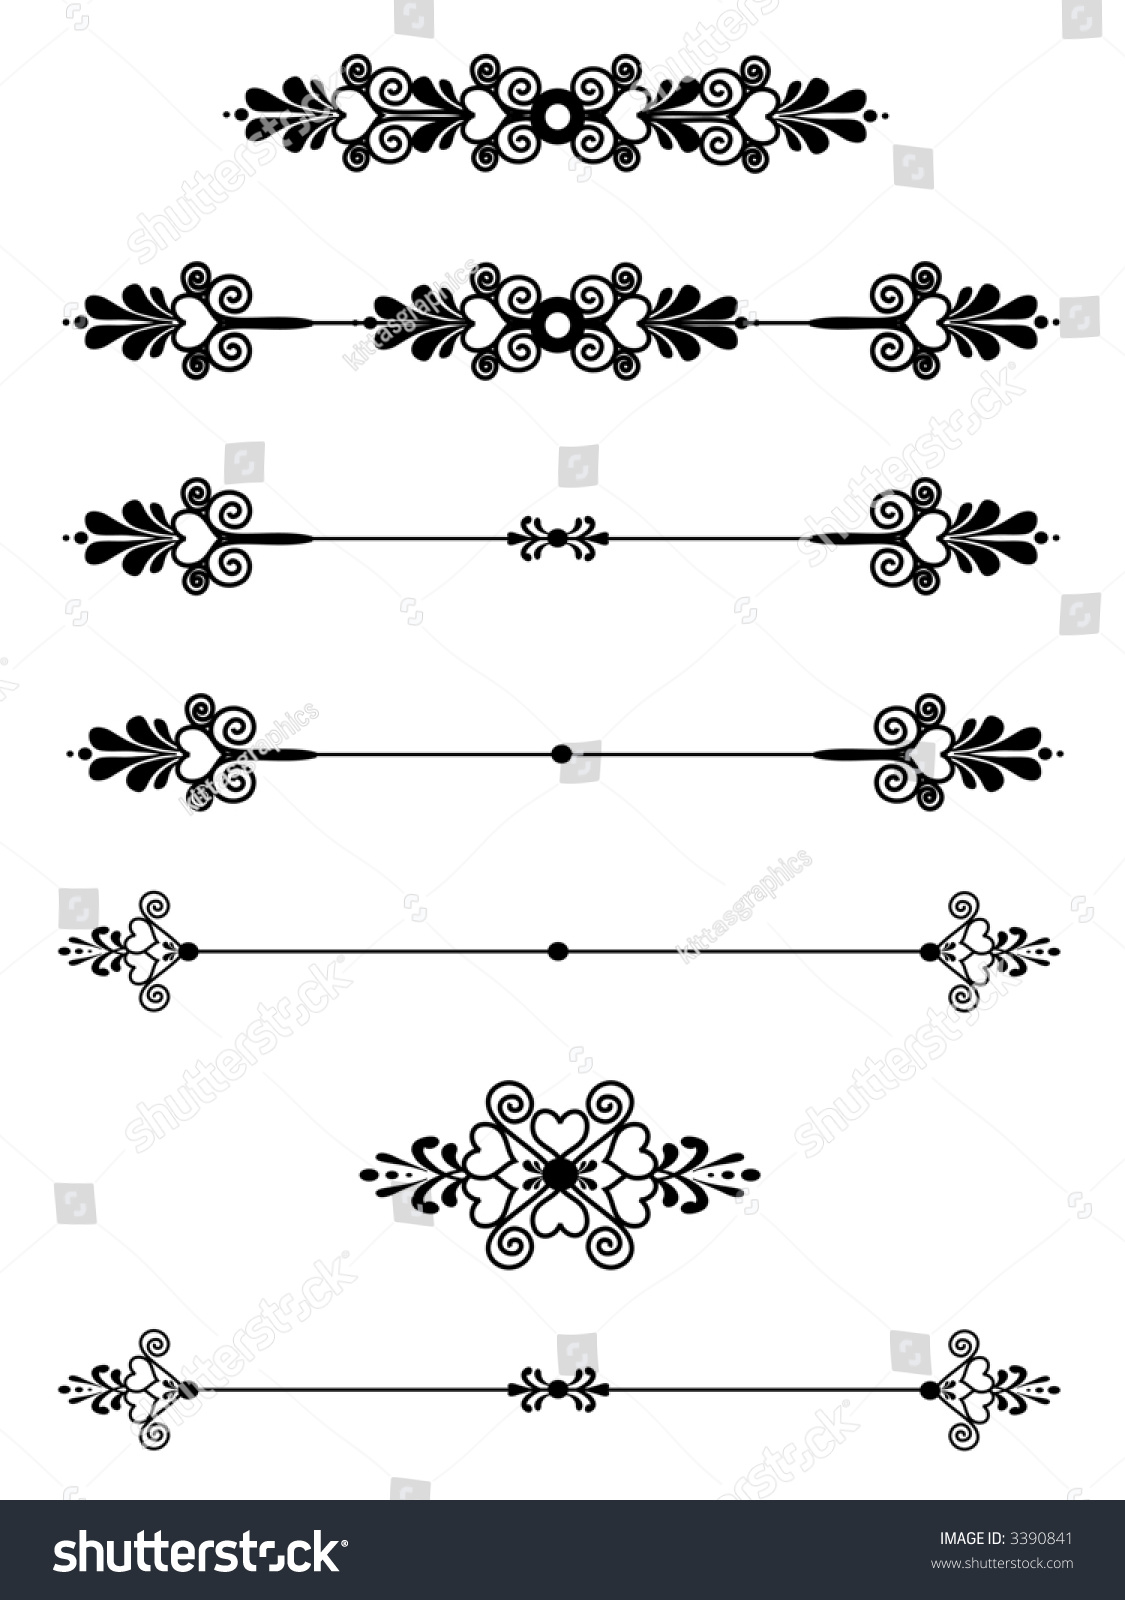 Basic Design Line : Hearts ornamental bar line divider rule stock photo